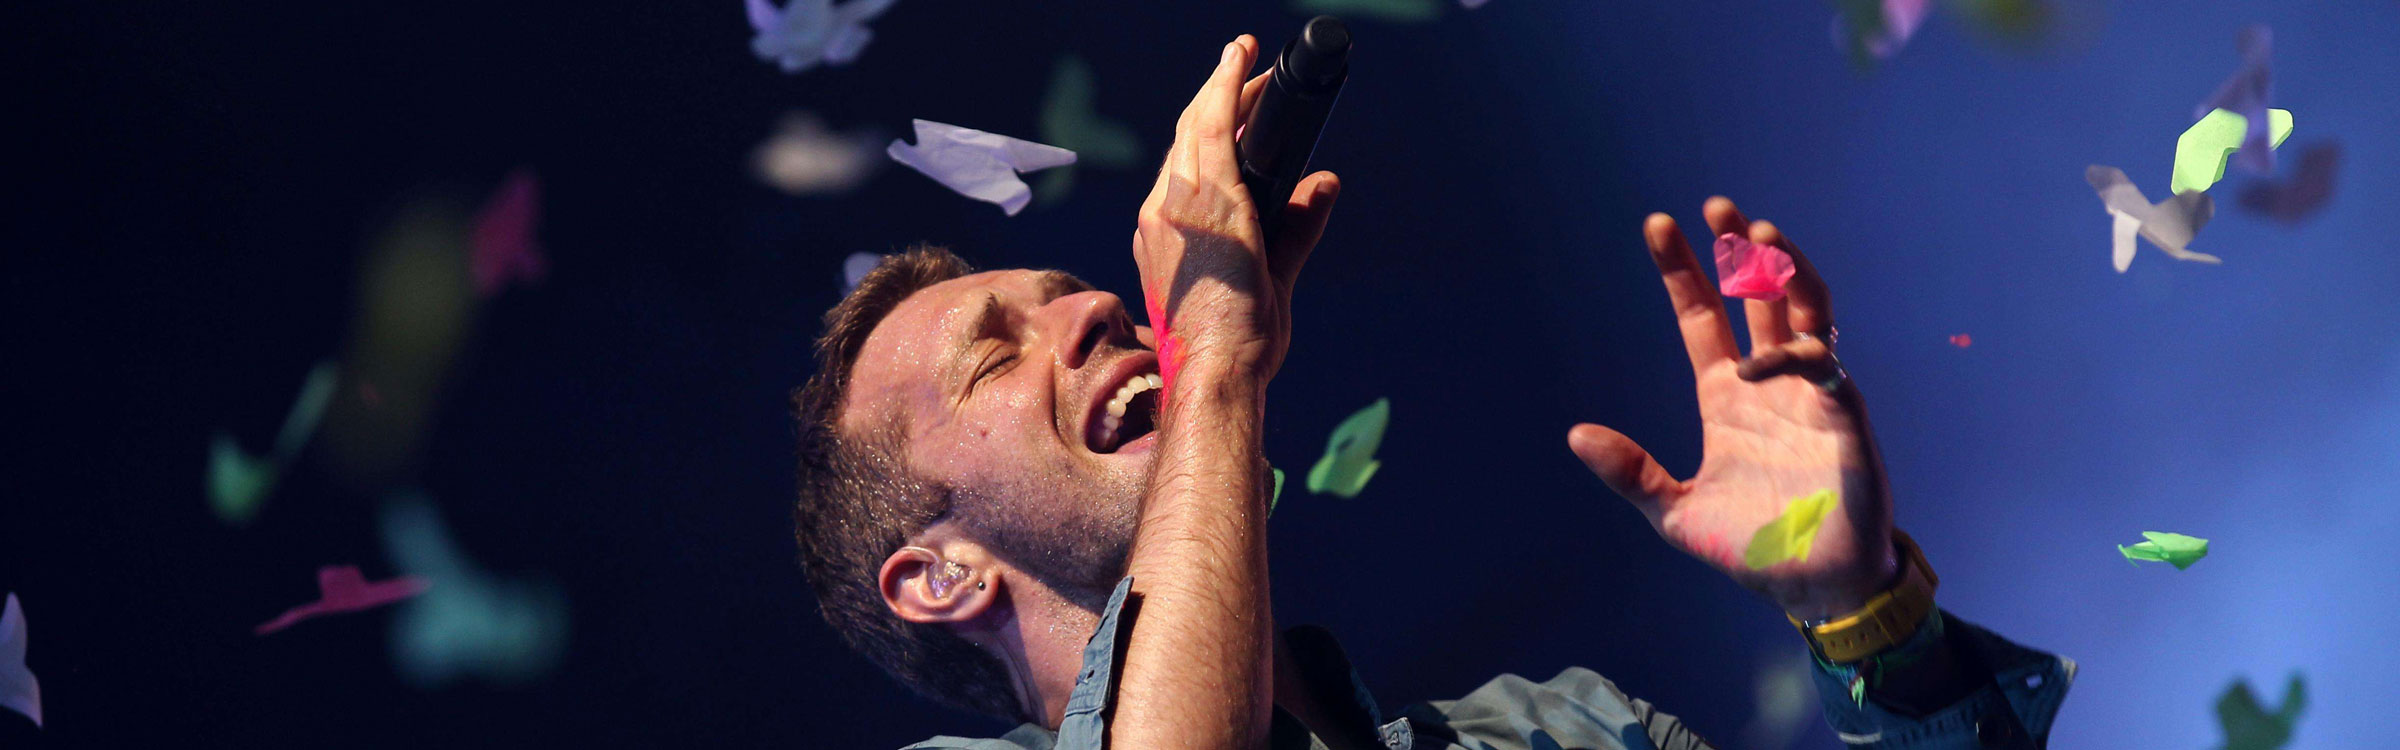 Chris martin header